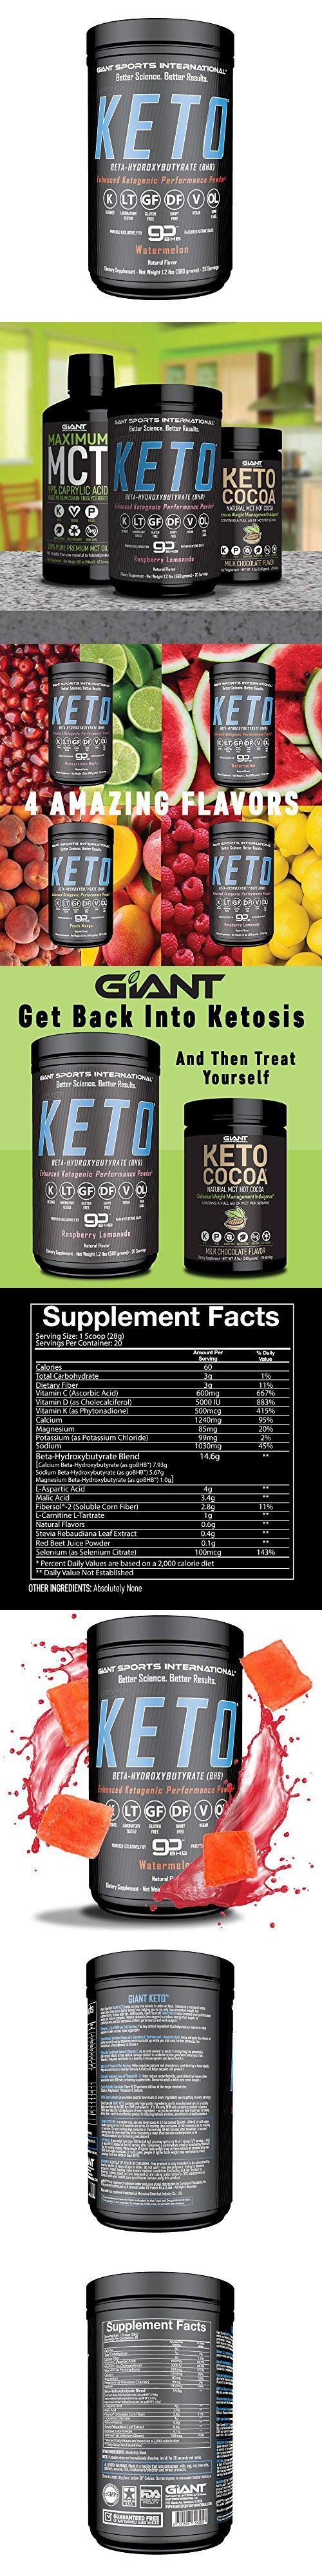 Giant Keto-Exogenous Ketones Supplement - Beta-Hydroxybutyrate Keto Powder Designed to Support Your Ketogenic Diet, Boost Energy and Burn Fat in Ketosis - Watermelon - 20 servings